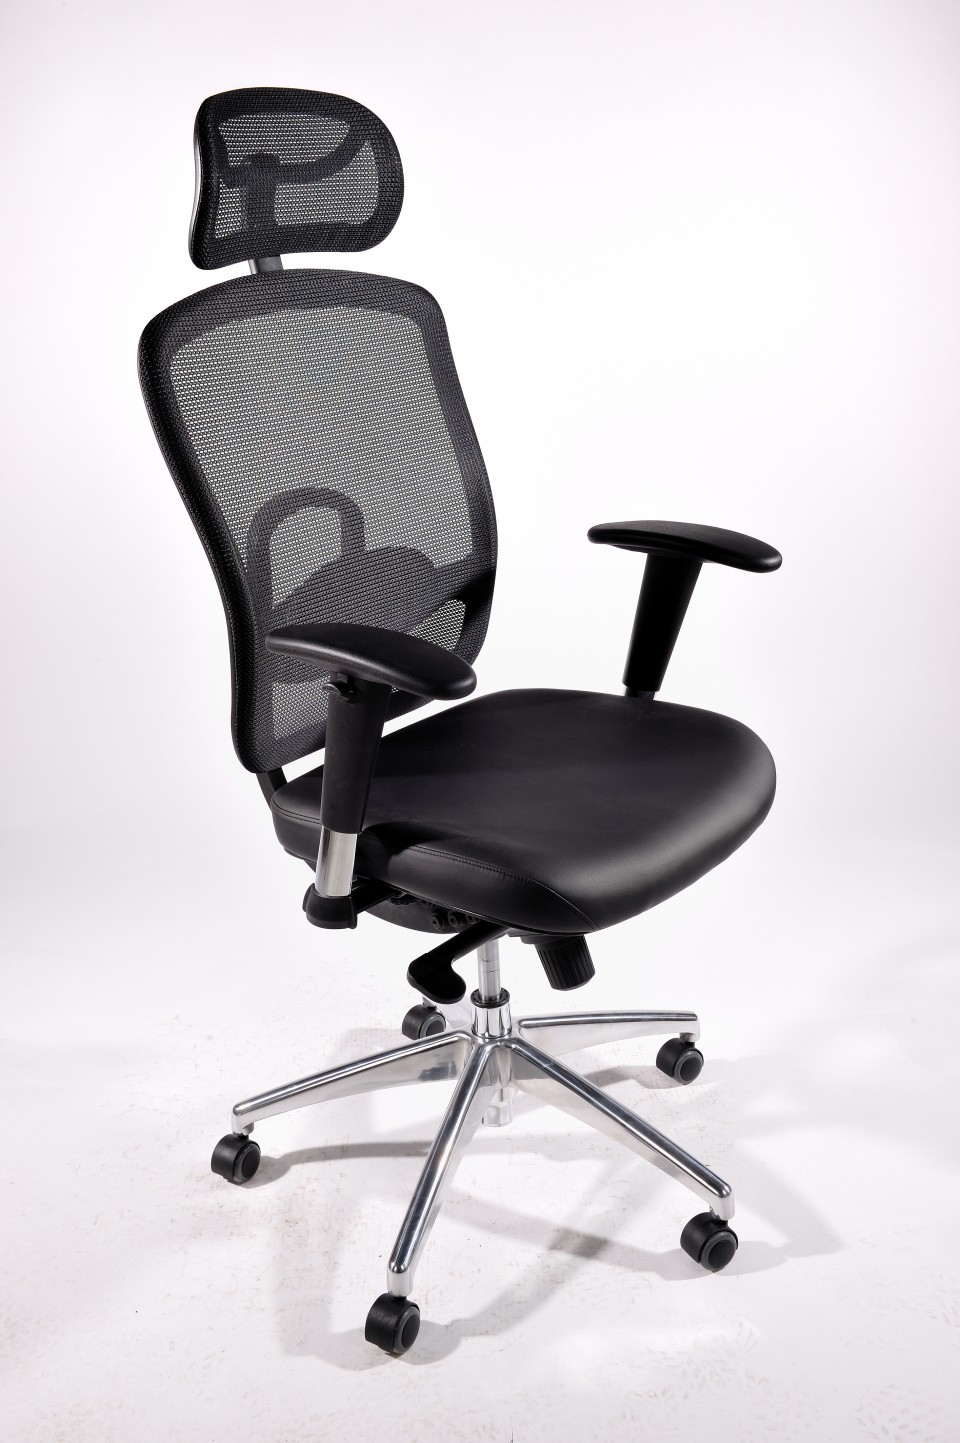 fauteuil de bureau ergonomique ergo seat achat si ges. Black Bedroom Furniture Sets. Home Design Ideas